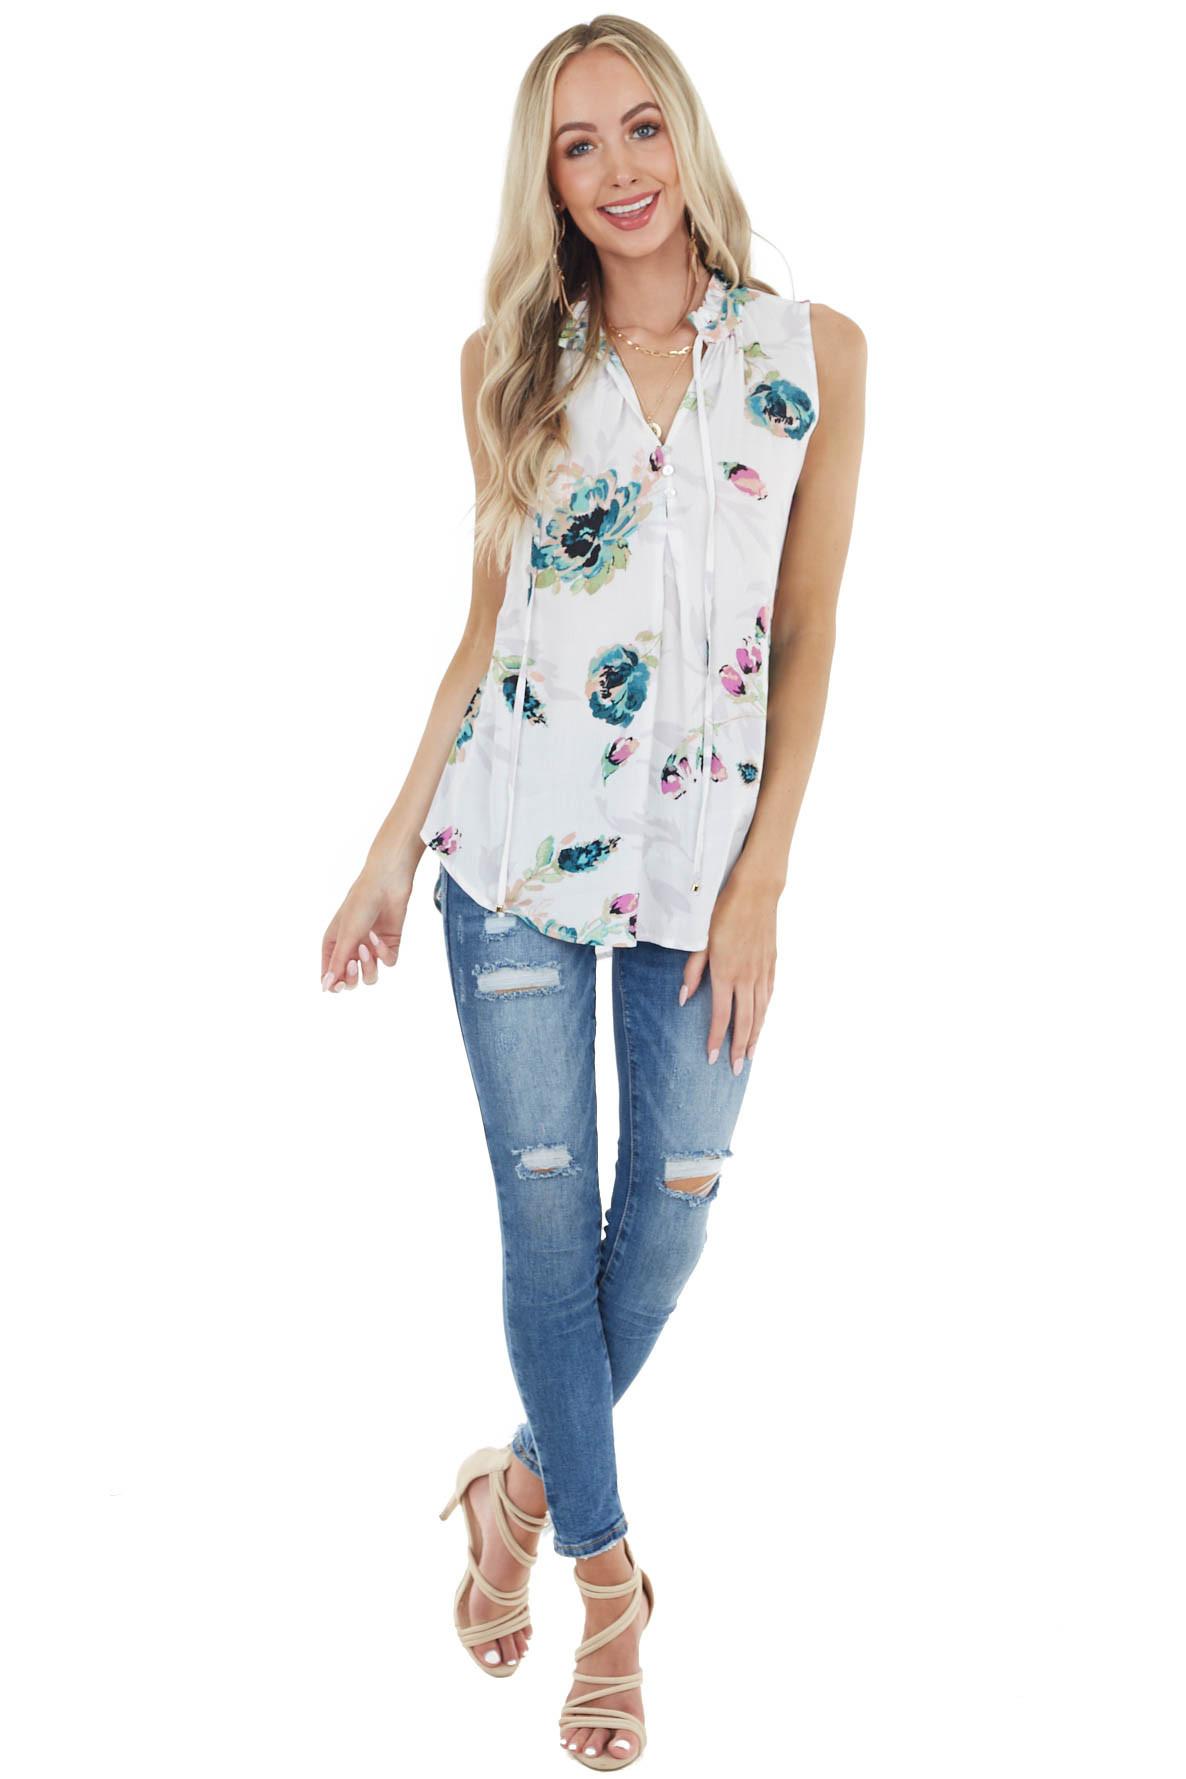 Ivory Floral Tank Top with Ruffled Neckline and Tie Detail